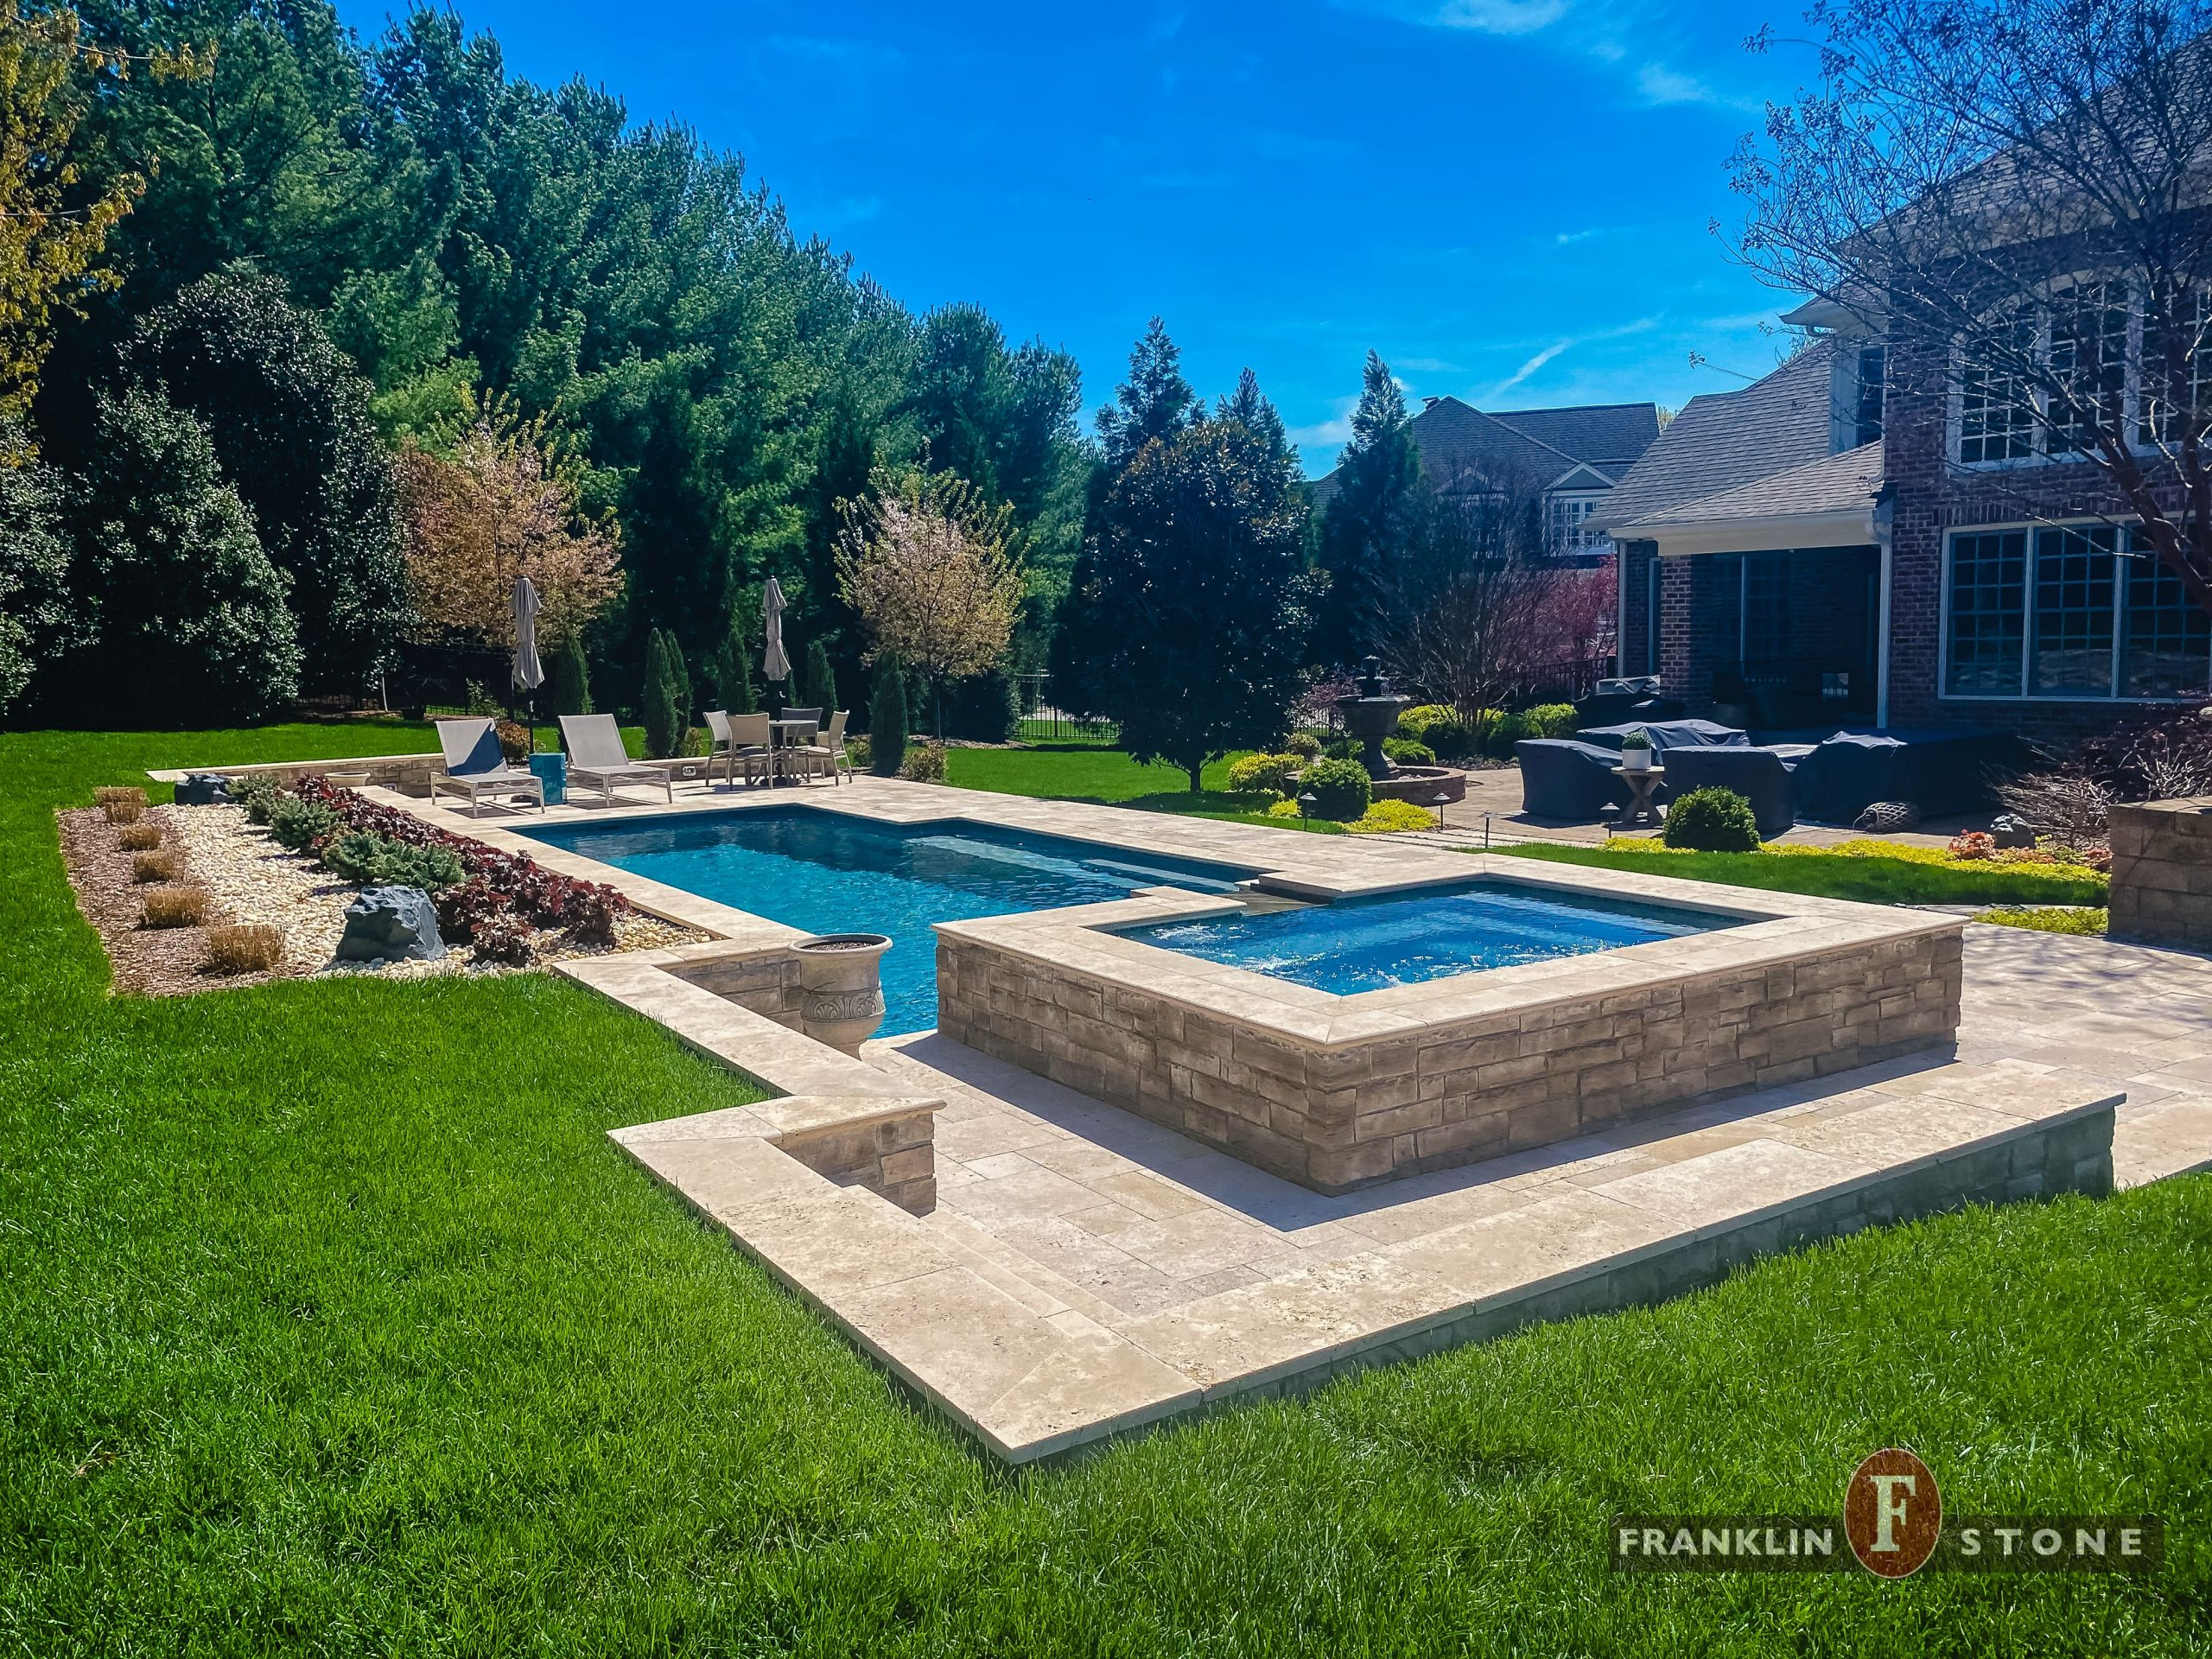 Franklin Stone pool and stone spa